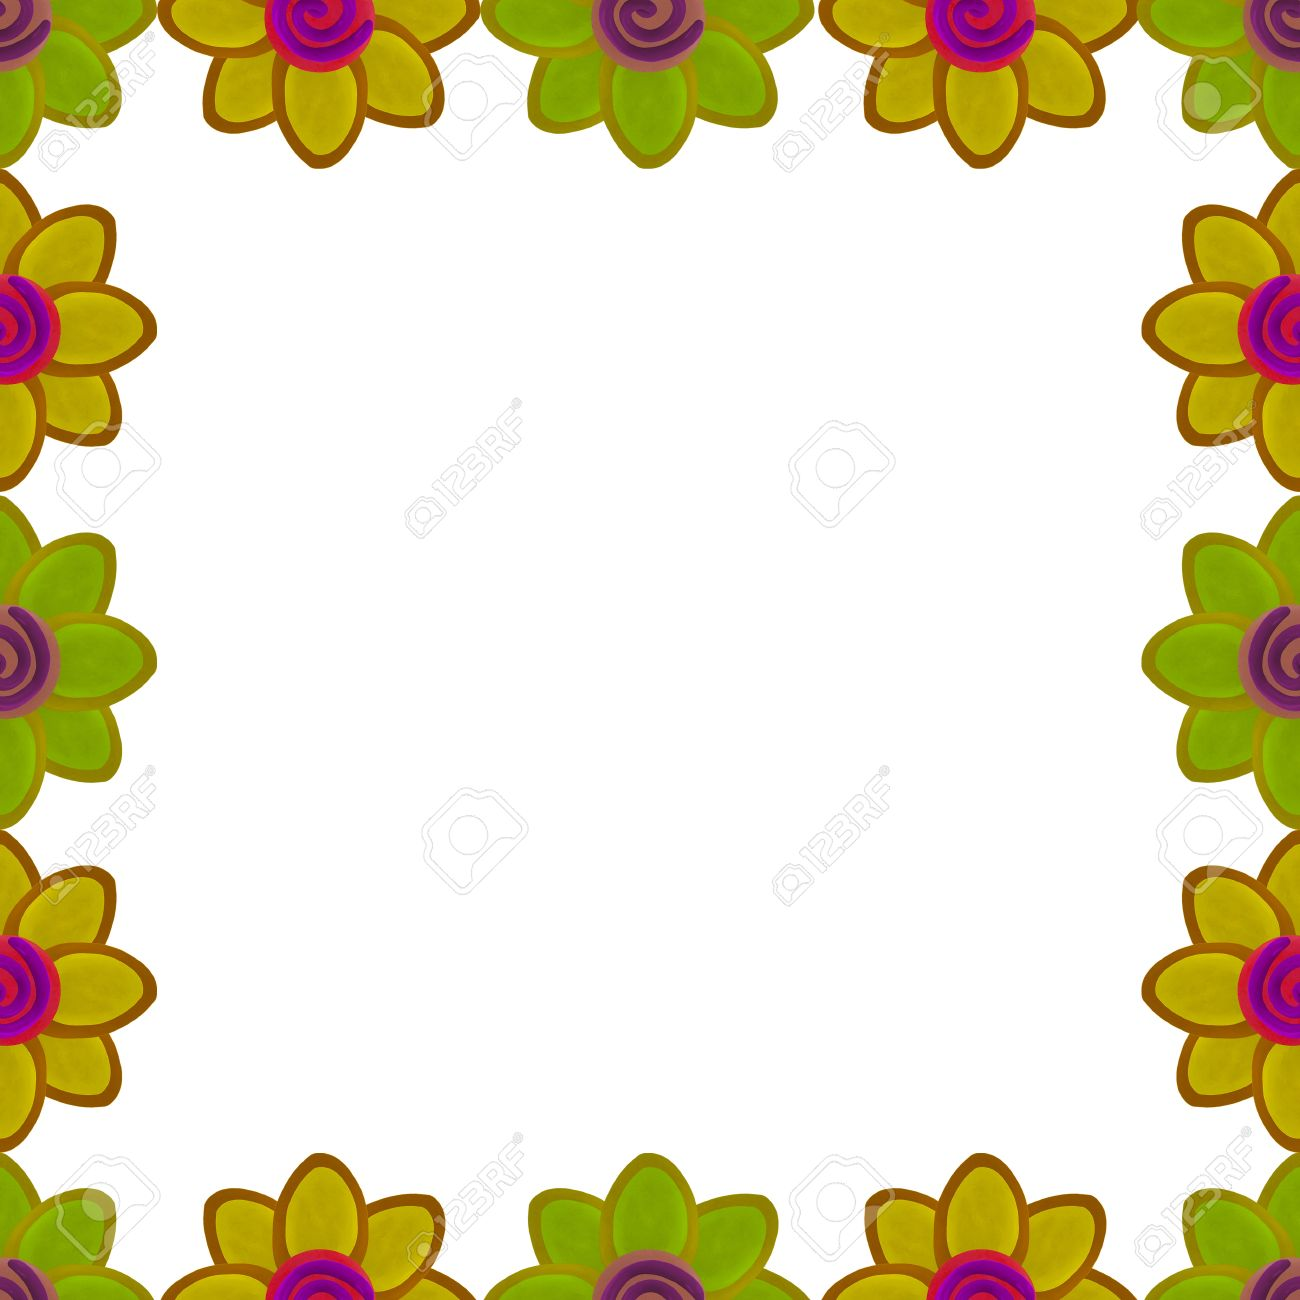 Yellow flower square border made from clay Stock Photo - 17921412